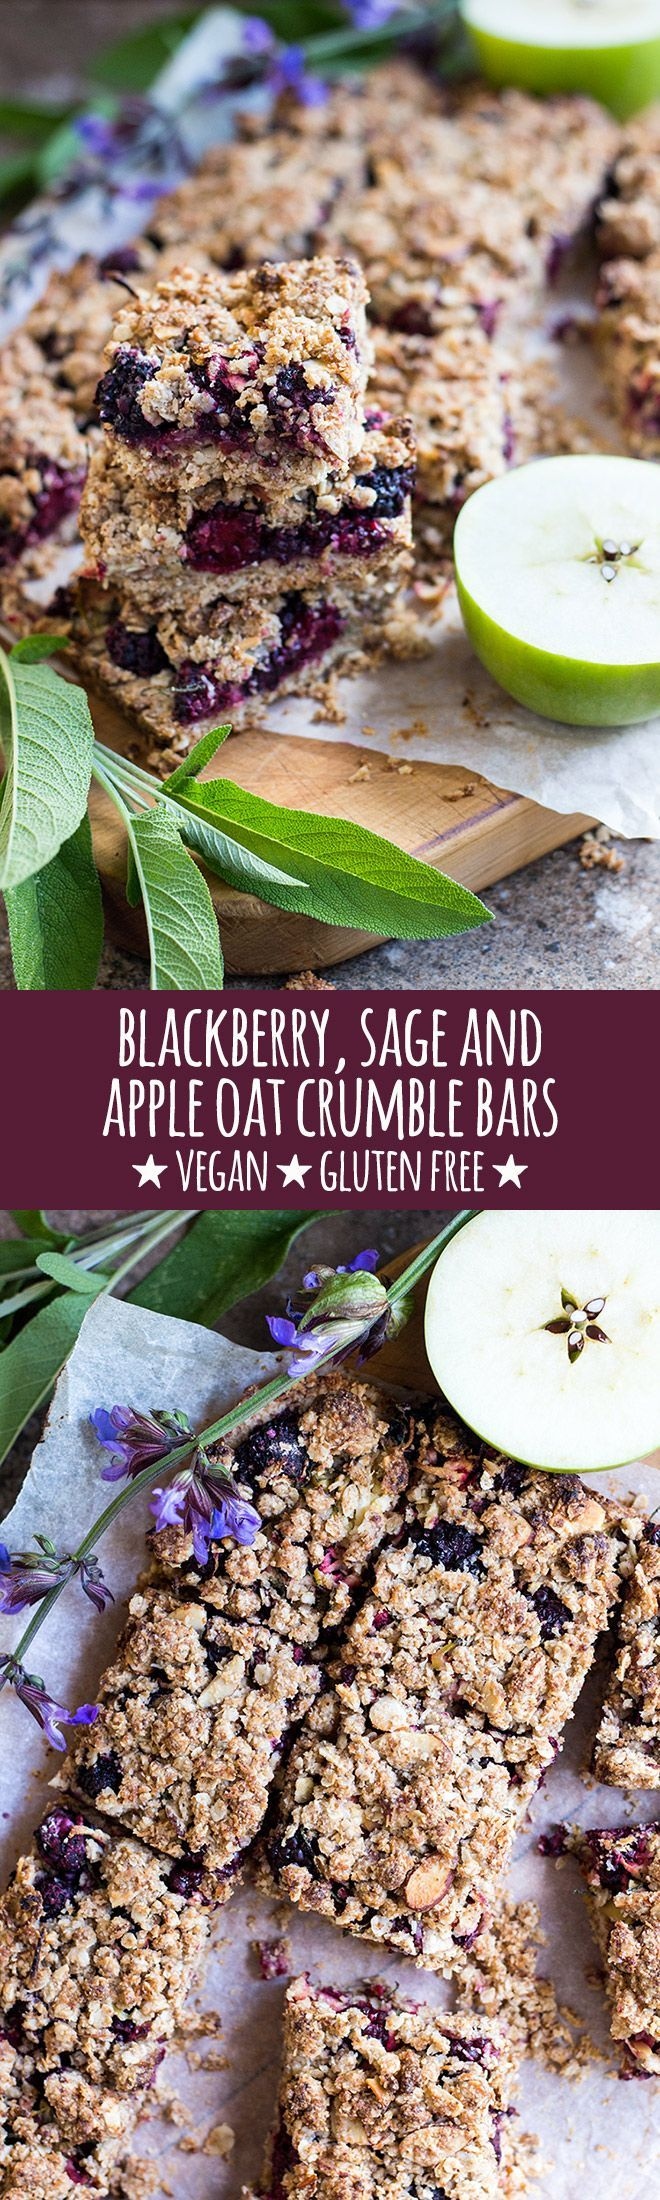 Oat crumble bars with blackberries, apple and a subtle hint of fresh sage and lemon are great for breakfast, snacks or warmed for dessert. via @quitegoodfood